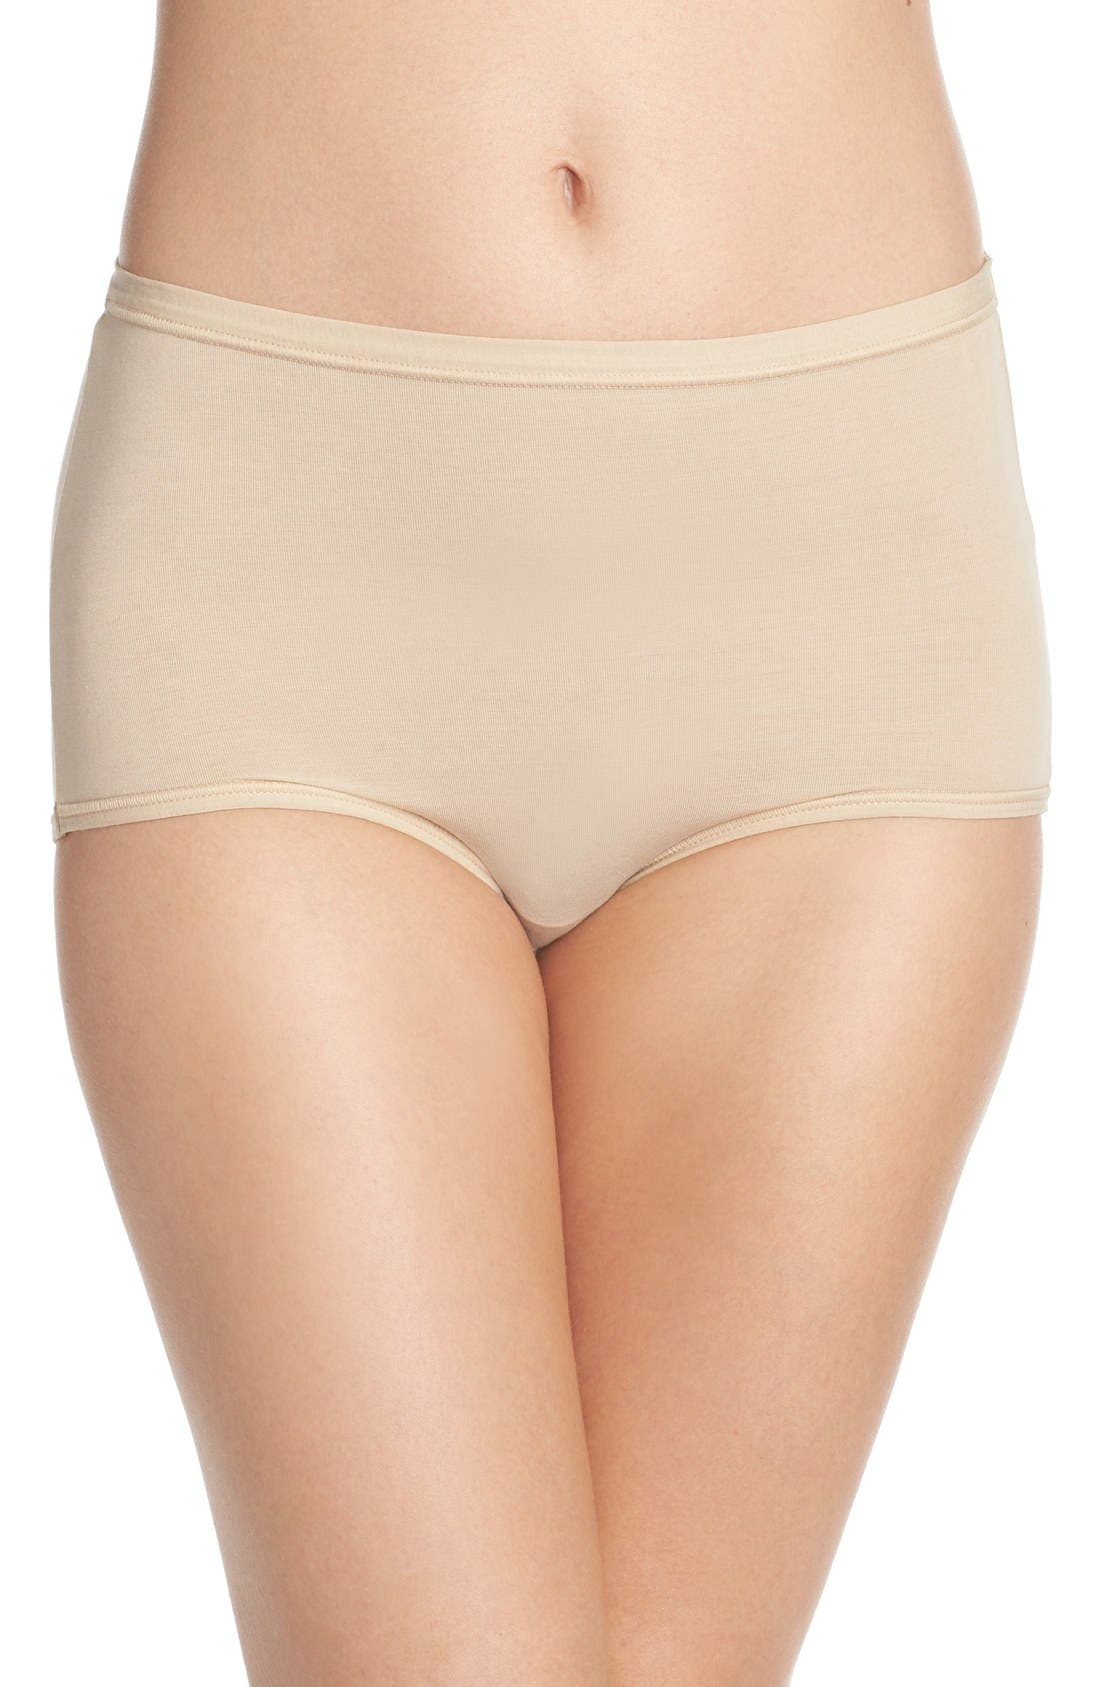 B Fitting Briefs,                         Main,                         color, NUDE